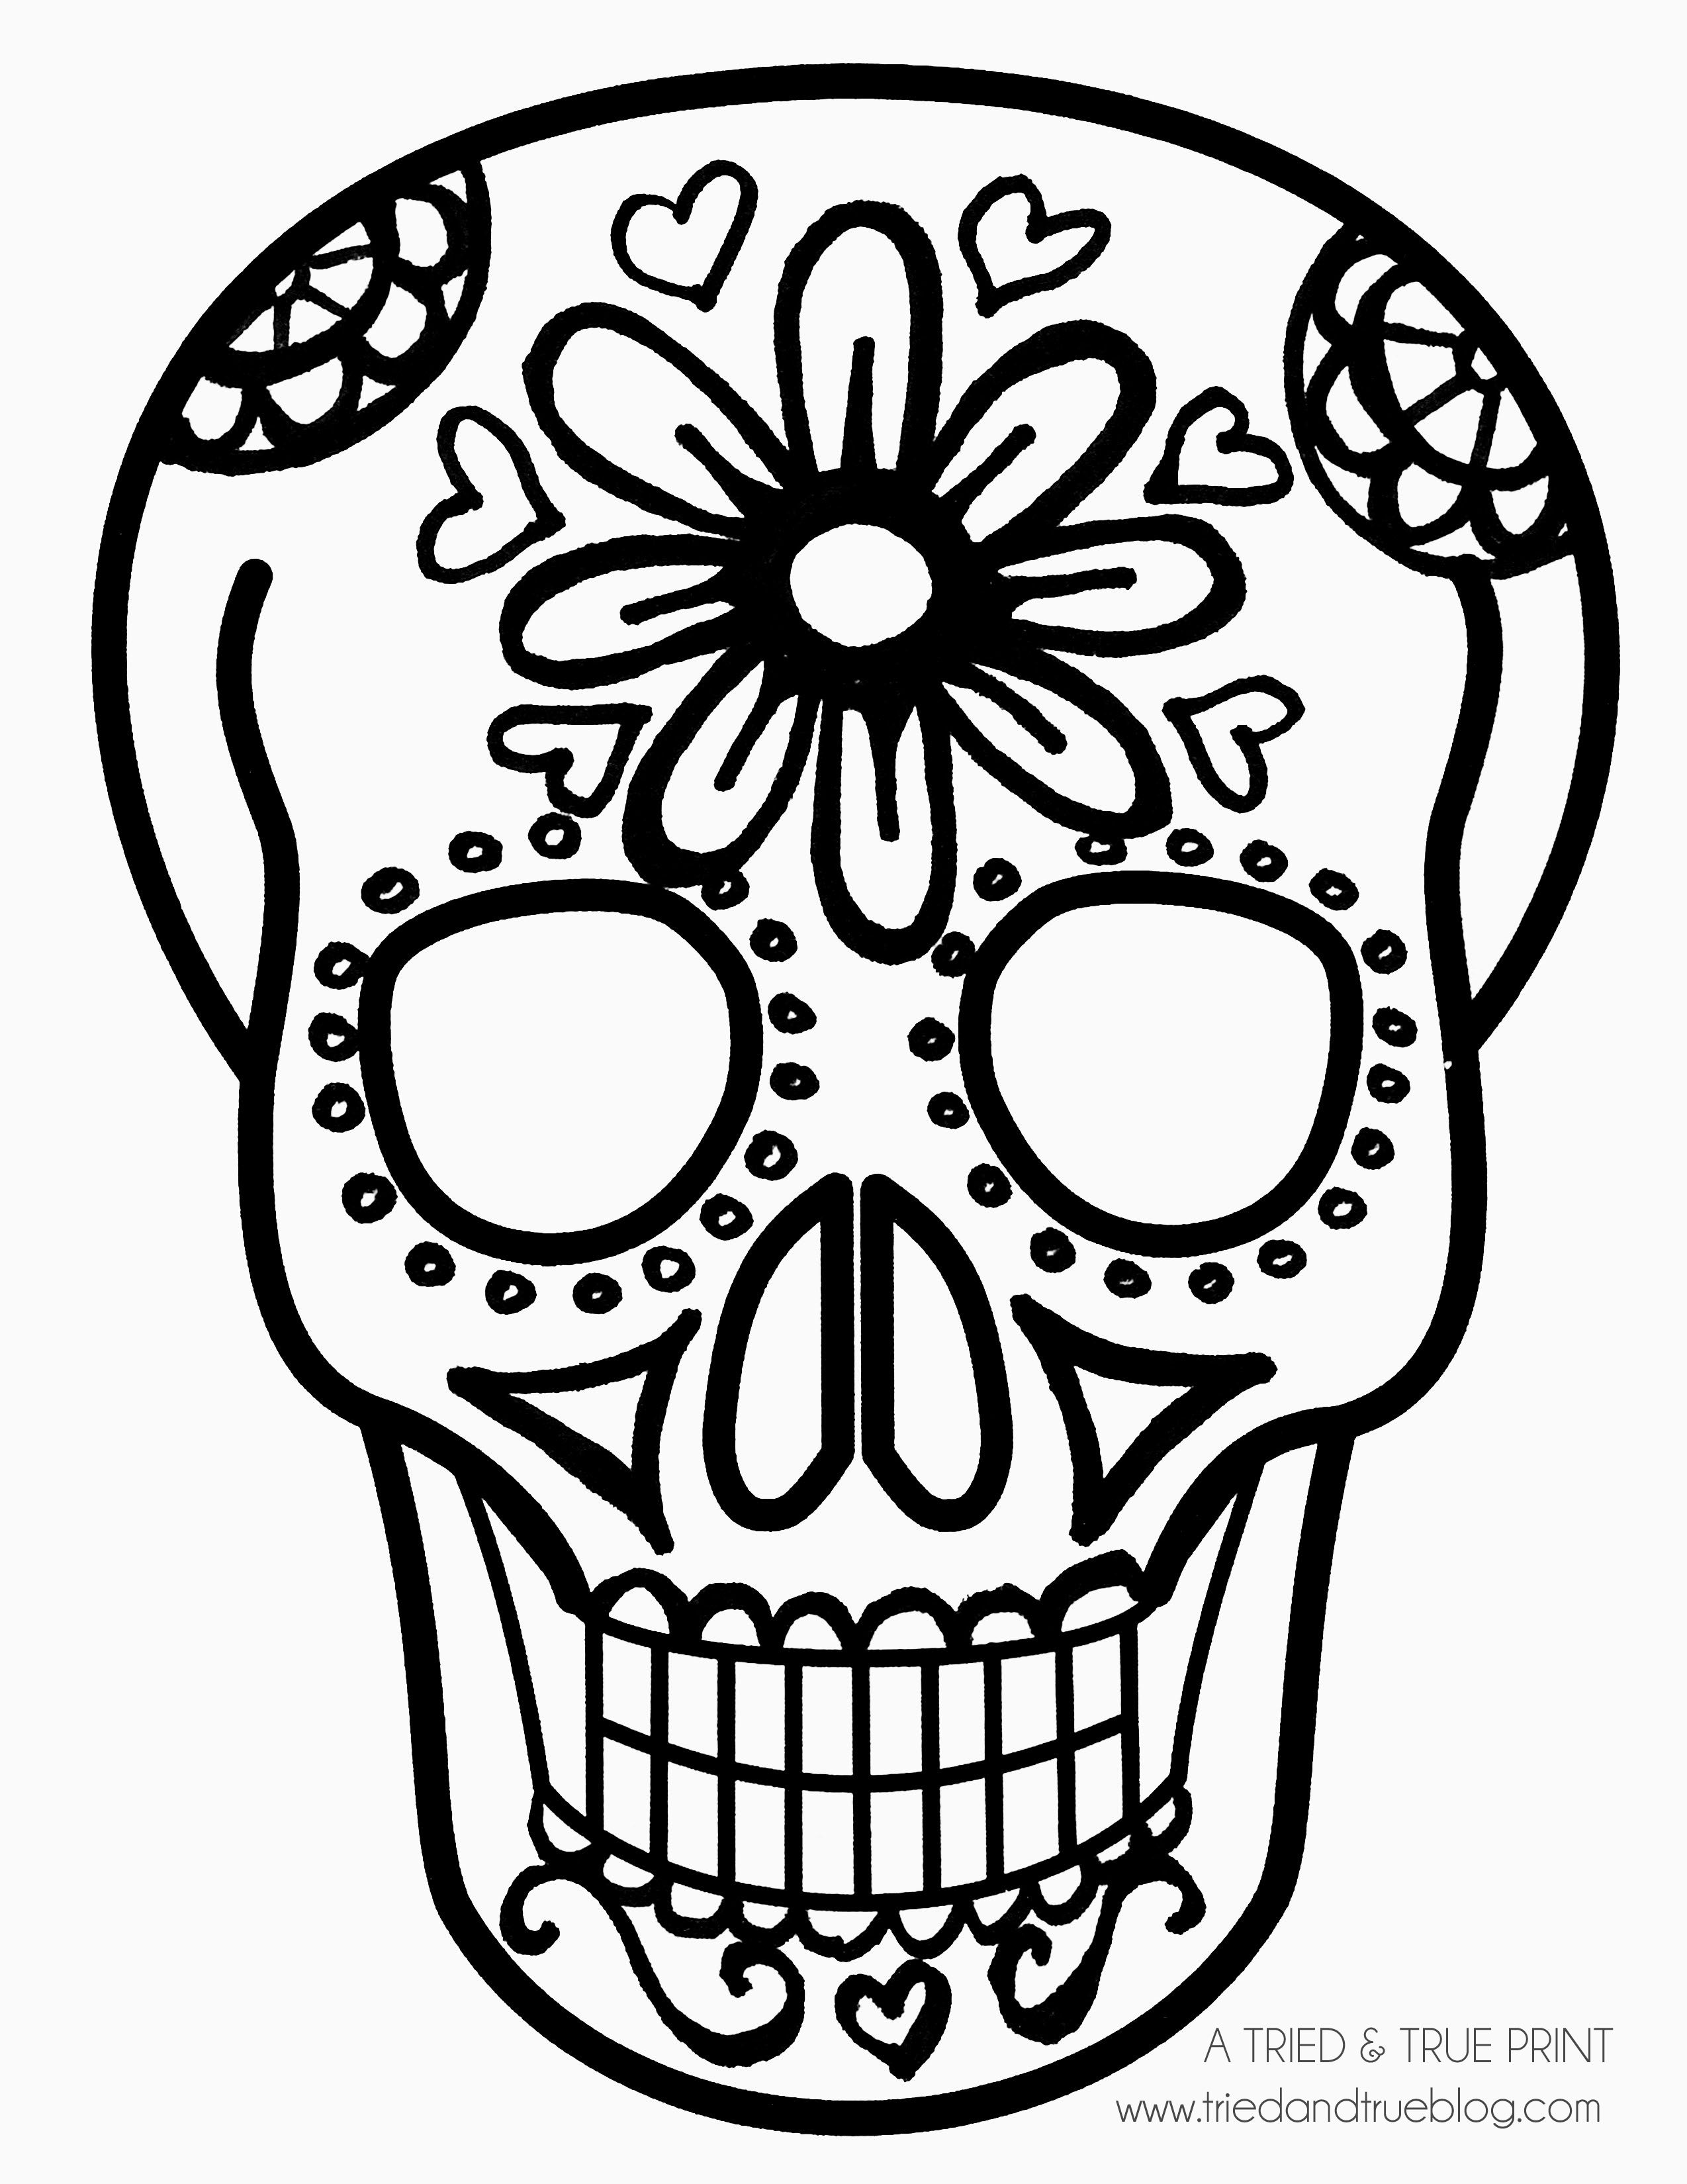 day of dead skull template easy calavera mask daisy and hearts easy skull drawings dead of template skull day